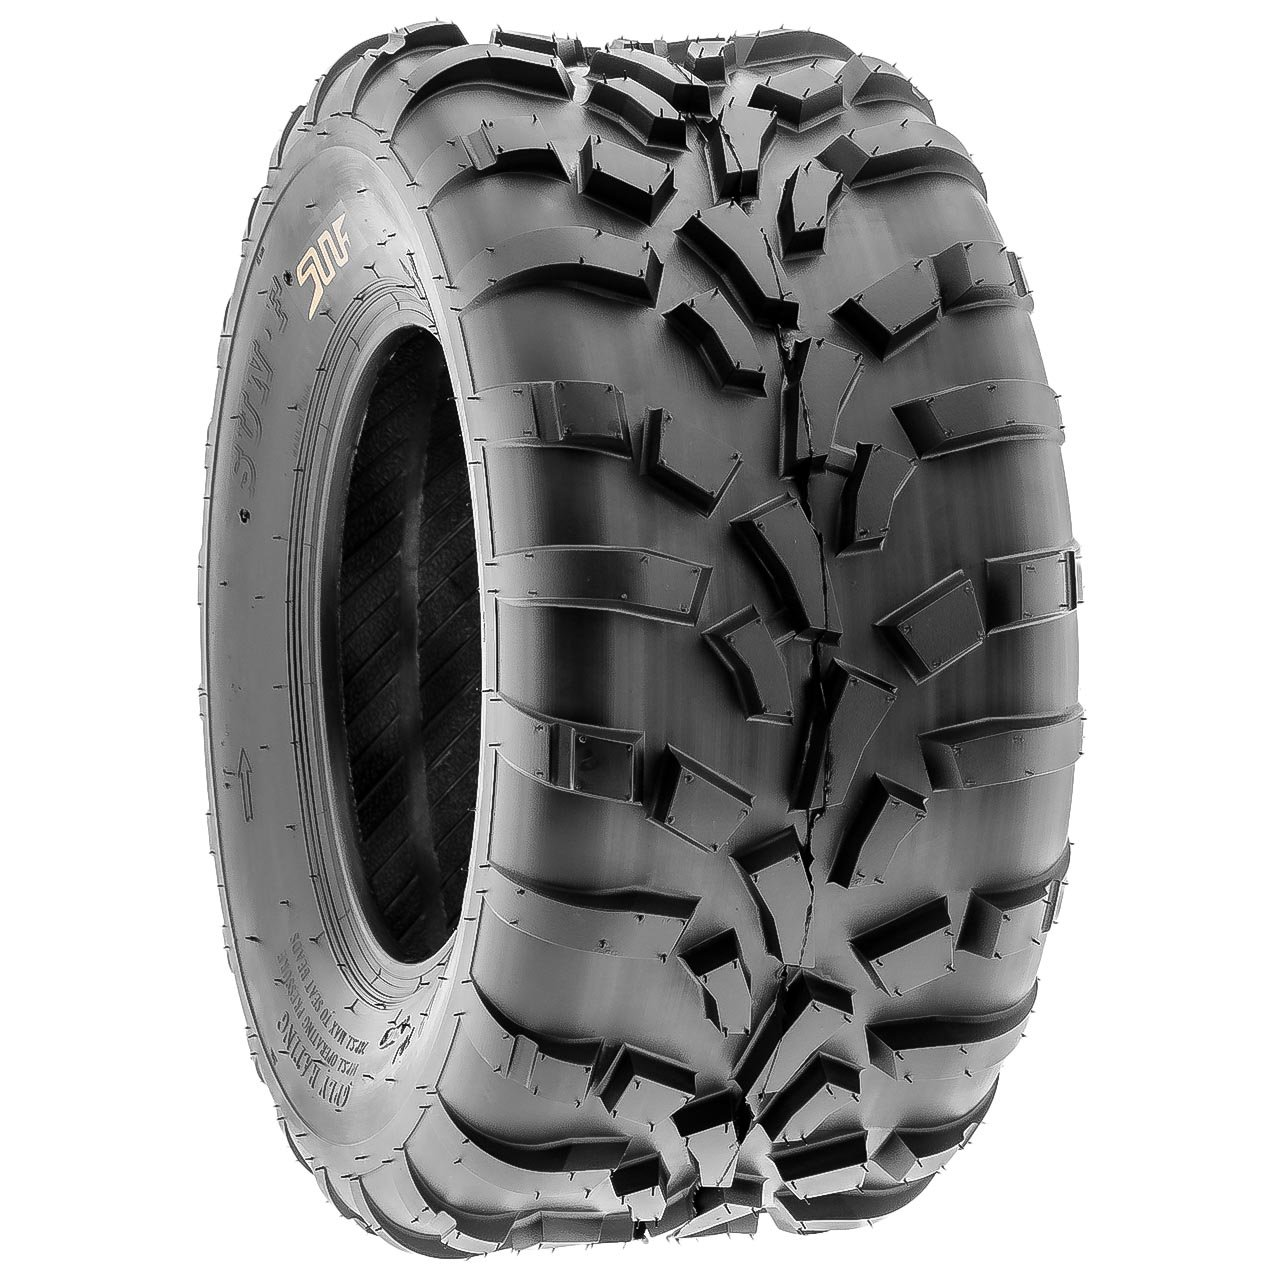 Pair of 2 SunF 25x11-12 AT-XC ATV/UTV Off-Road Tires , 6PR , Directional Knobby Tread | A010 by SunF (Image #6)